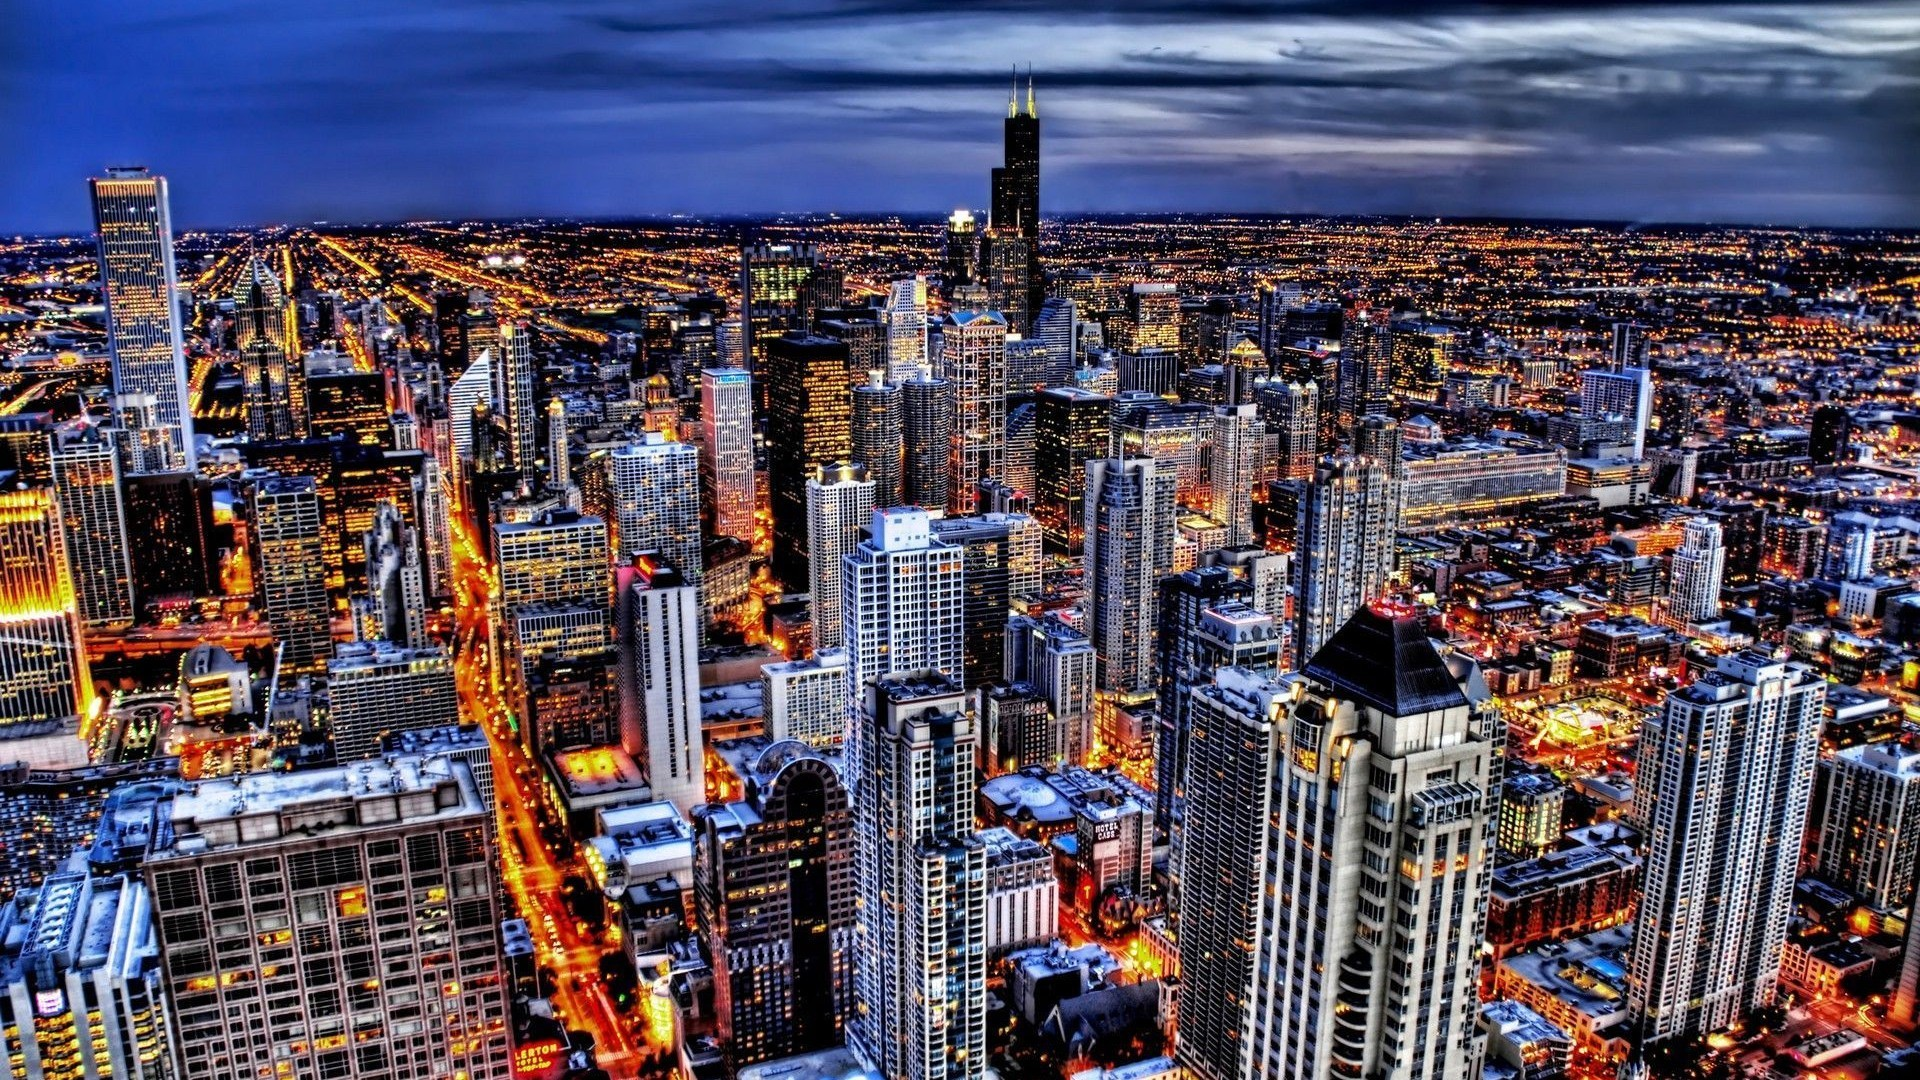 1920x1080 Chicago Skyline Wallpaper Wide #dRA